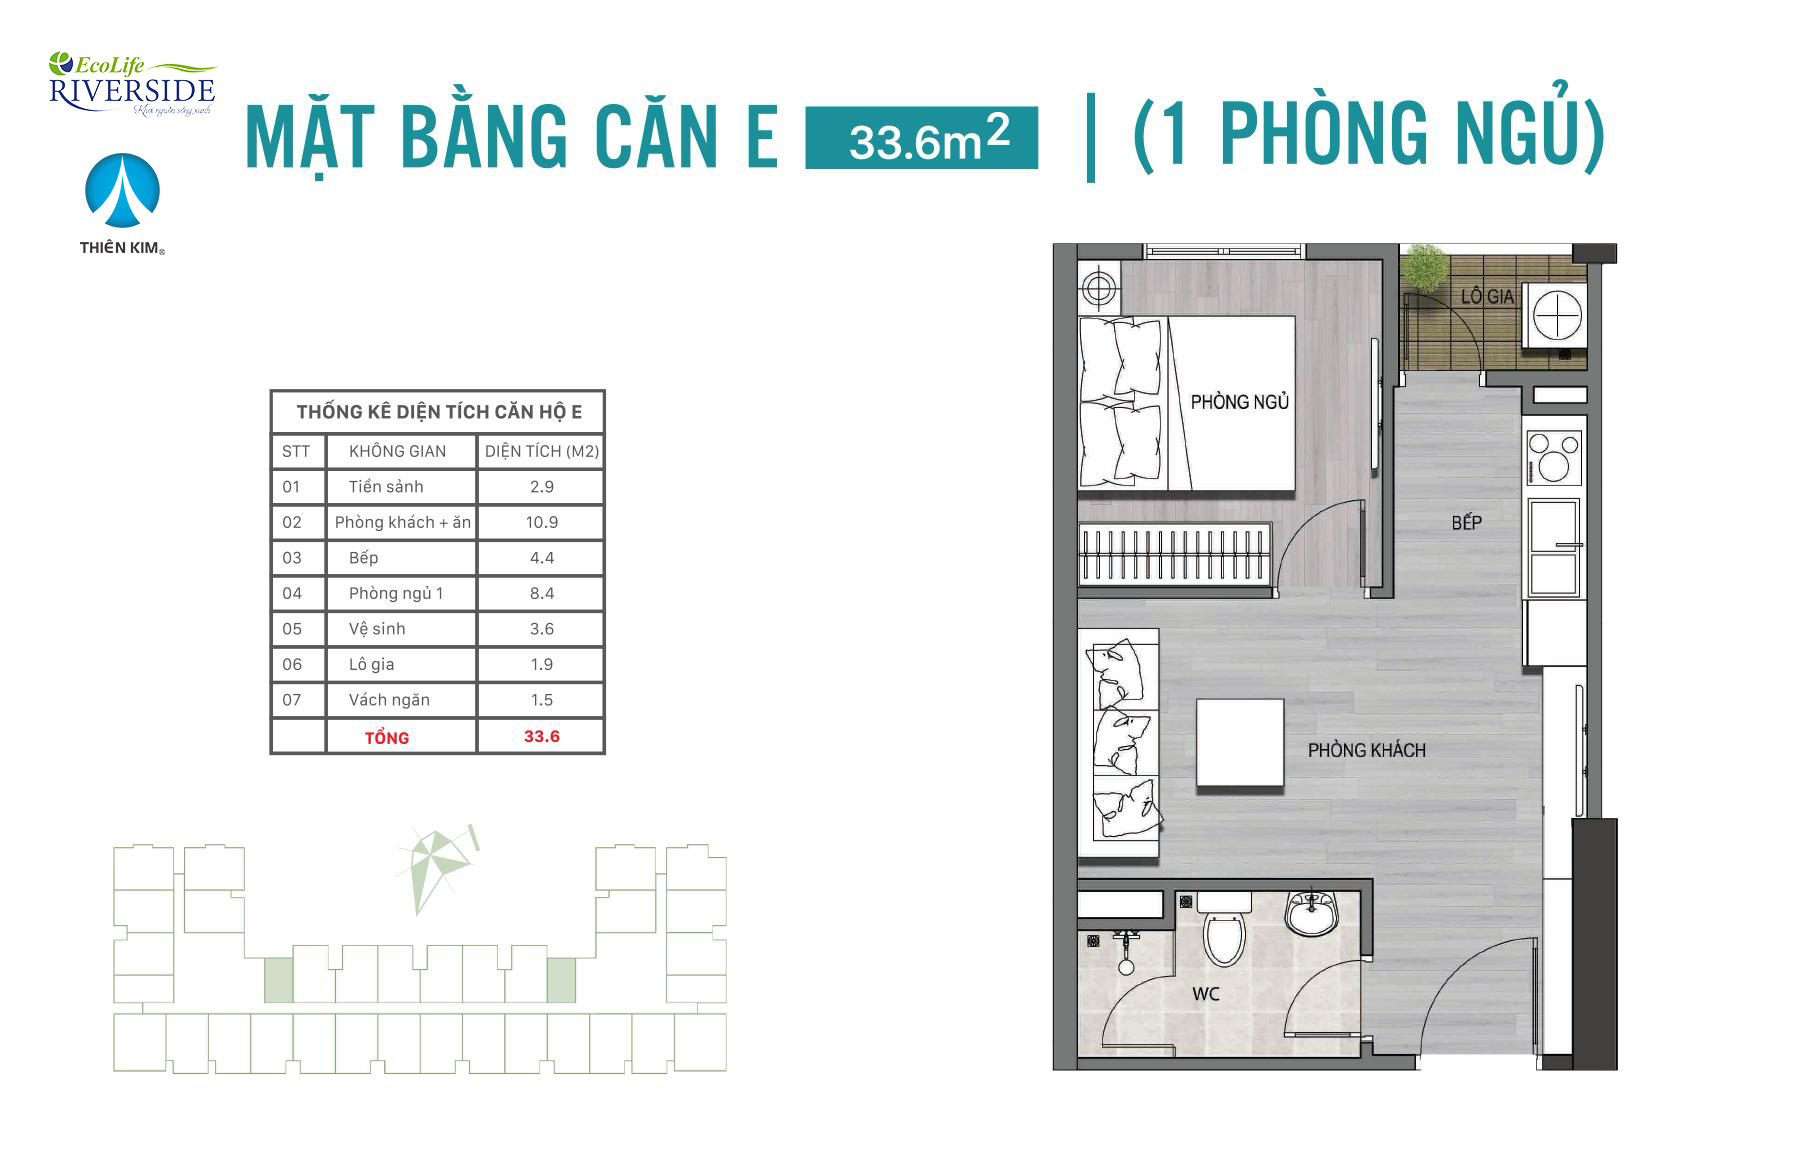 mat-bang-can-E-1-phong-ngu